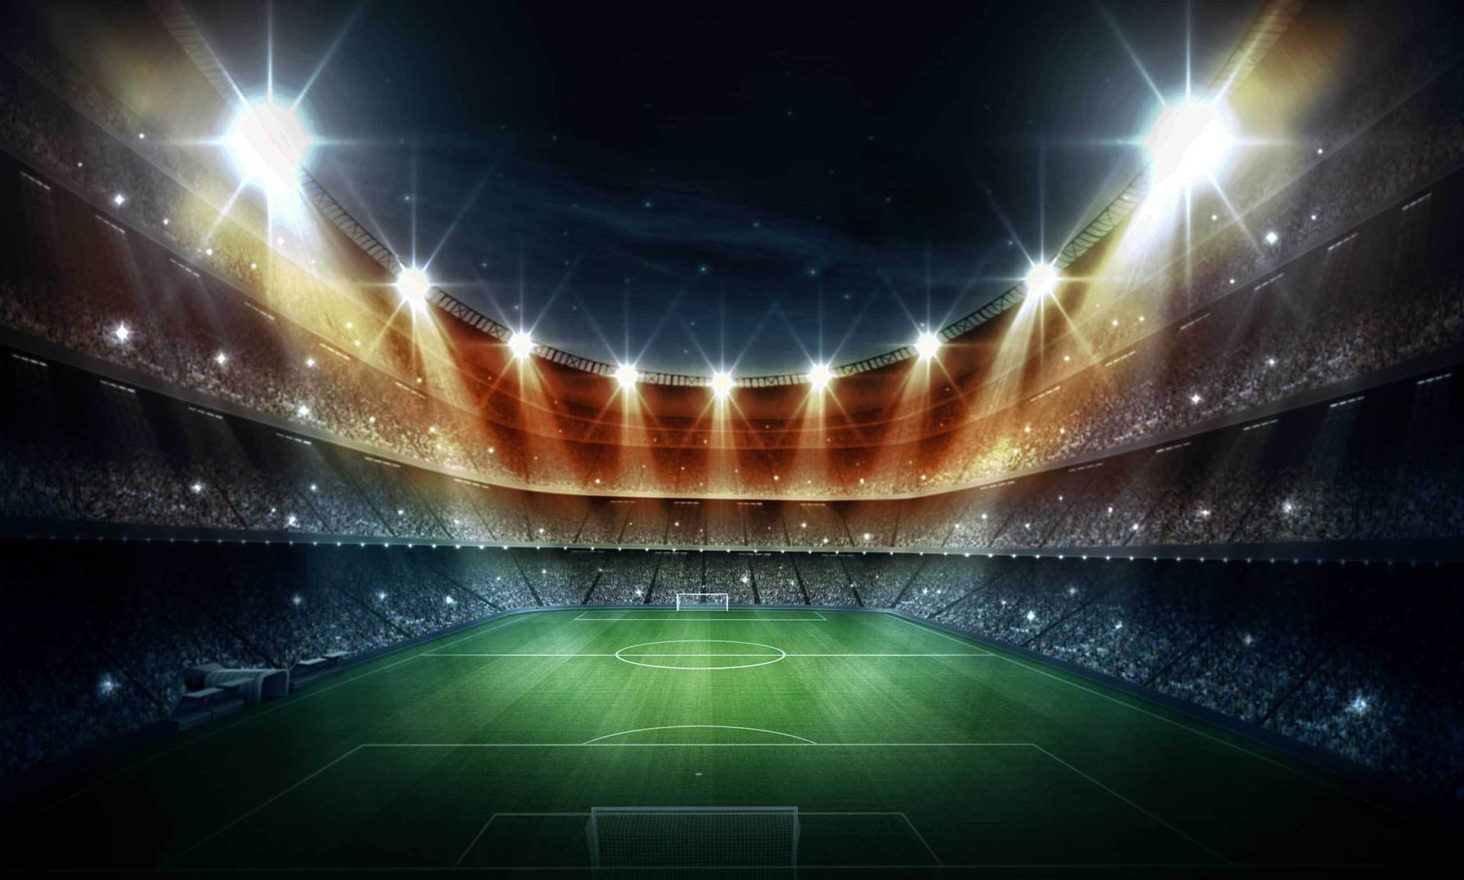 FootballCoin Platform Announces the ICO of its XFC Cryptocurrency, Offers Collectable Cards